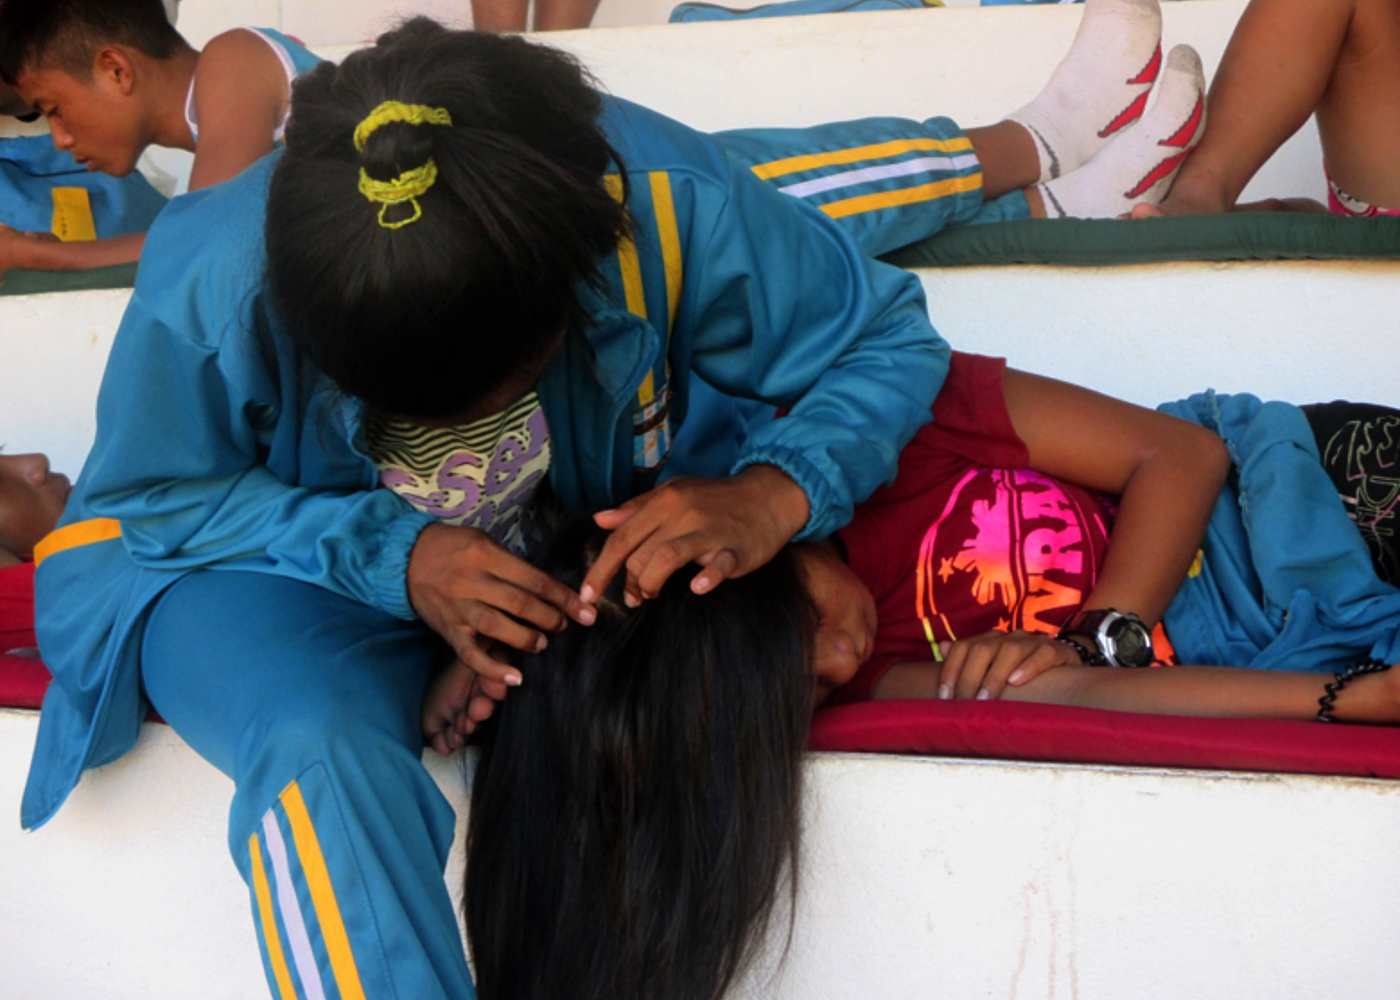 A GIRL THING. Coach and athlete shows sisterly bond while resting at the Binirayan Sports Complex.